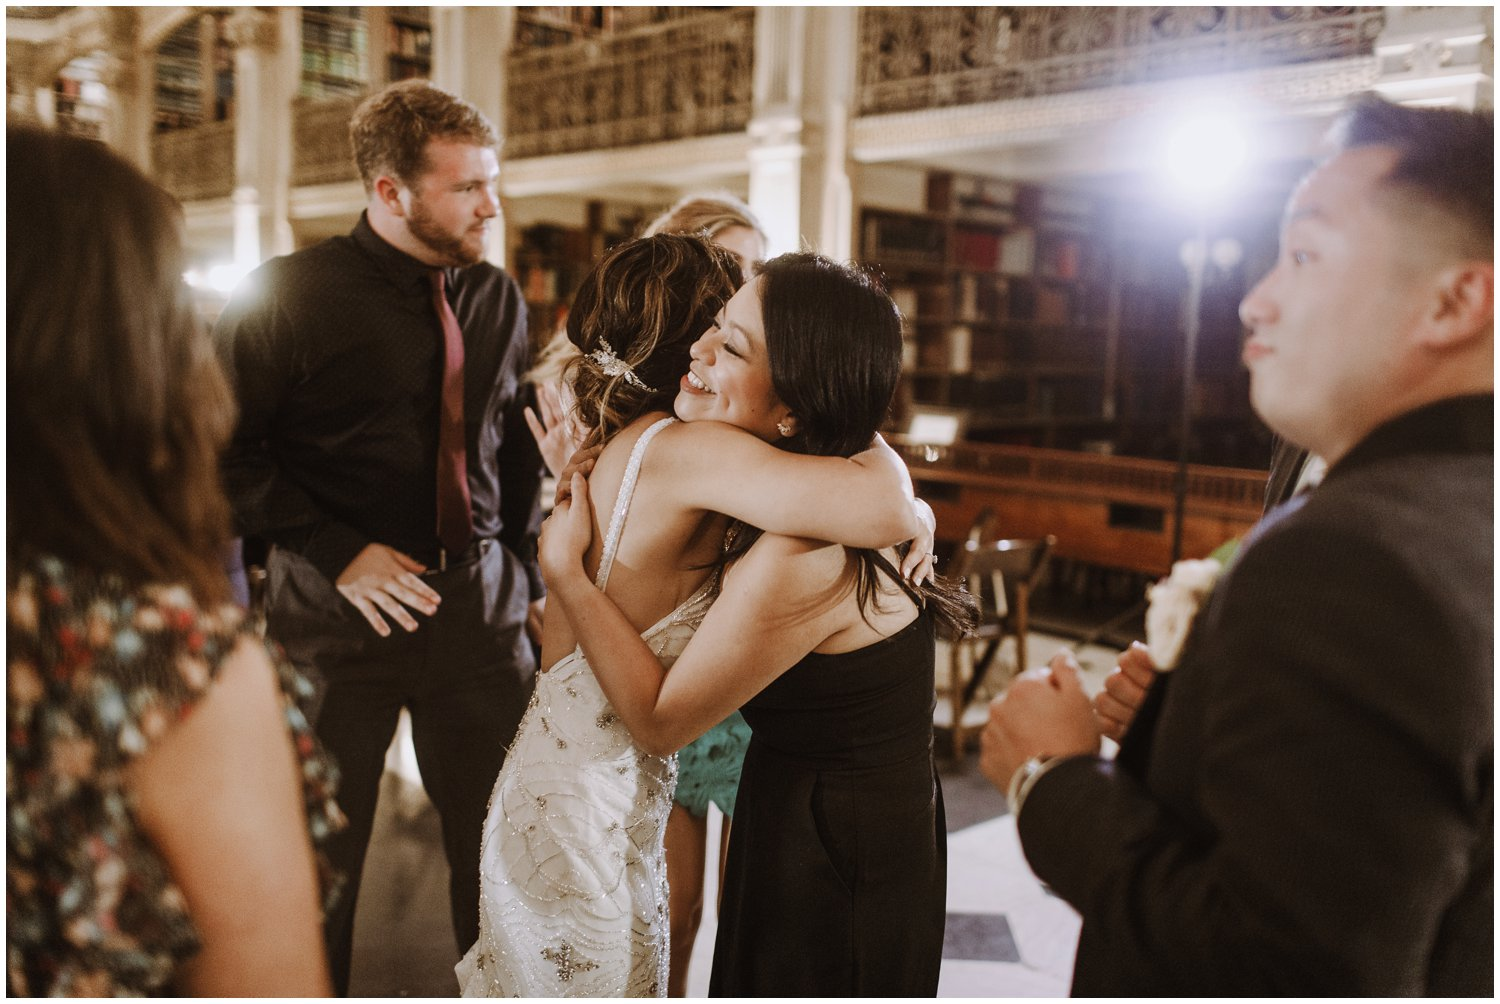 Peabody Library Wedding reception | Baltimore Wedding Photographer | Art Deco Wedding Photography | Kate Ann Photography